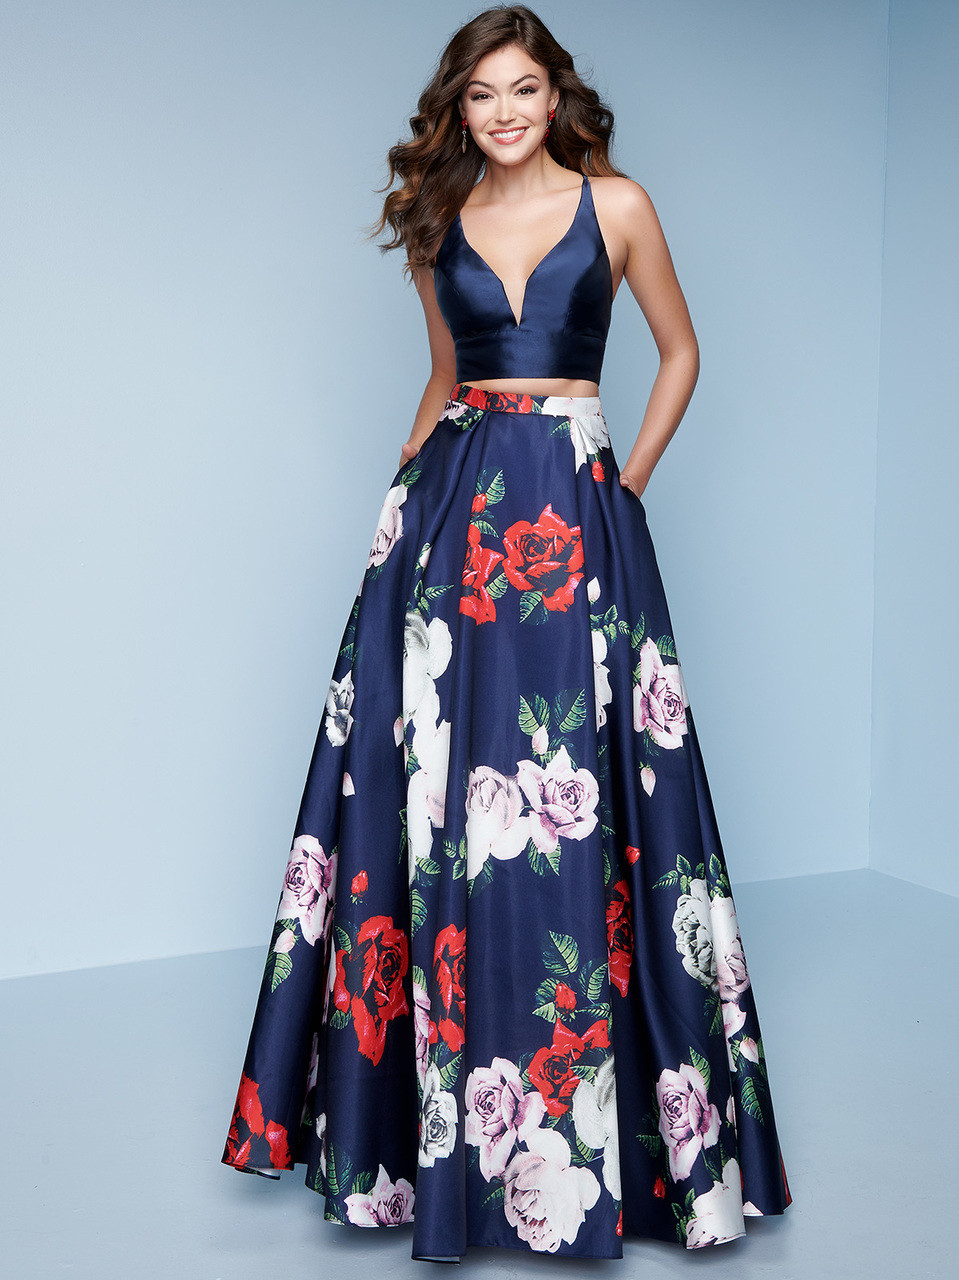 86a1244ae8c Floral Two-Piece Splash Prom Dress K133   PromHeadquarters.com